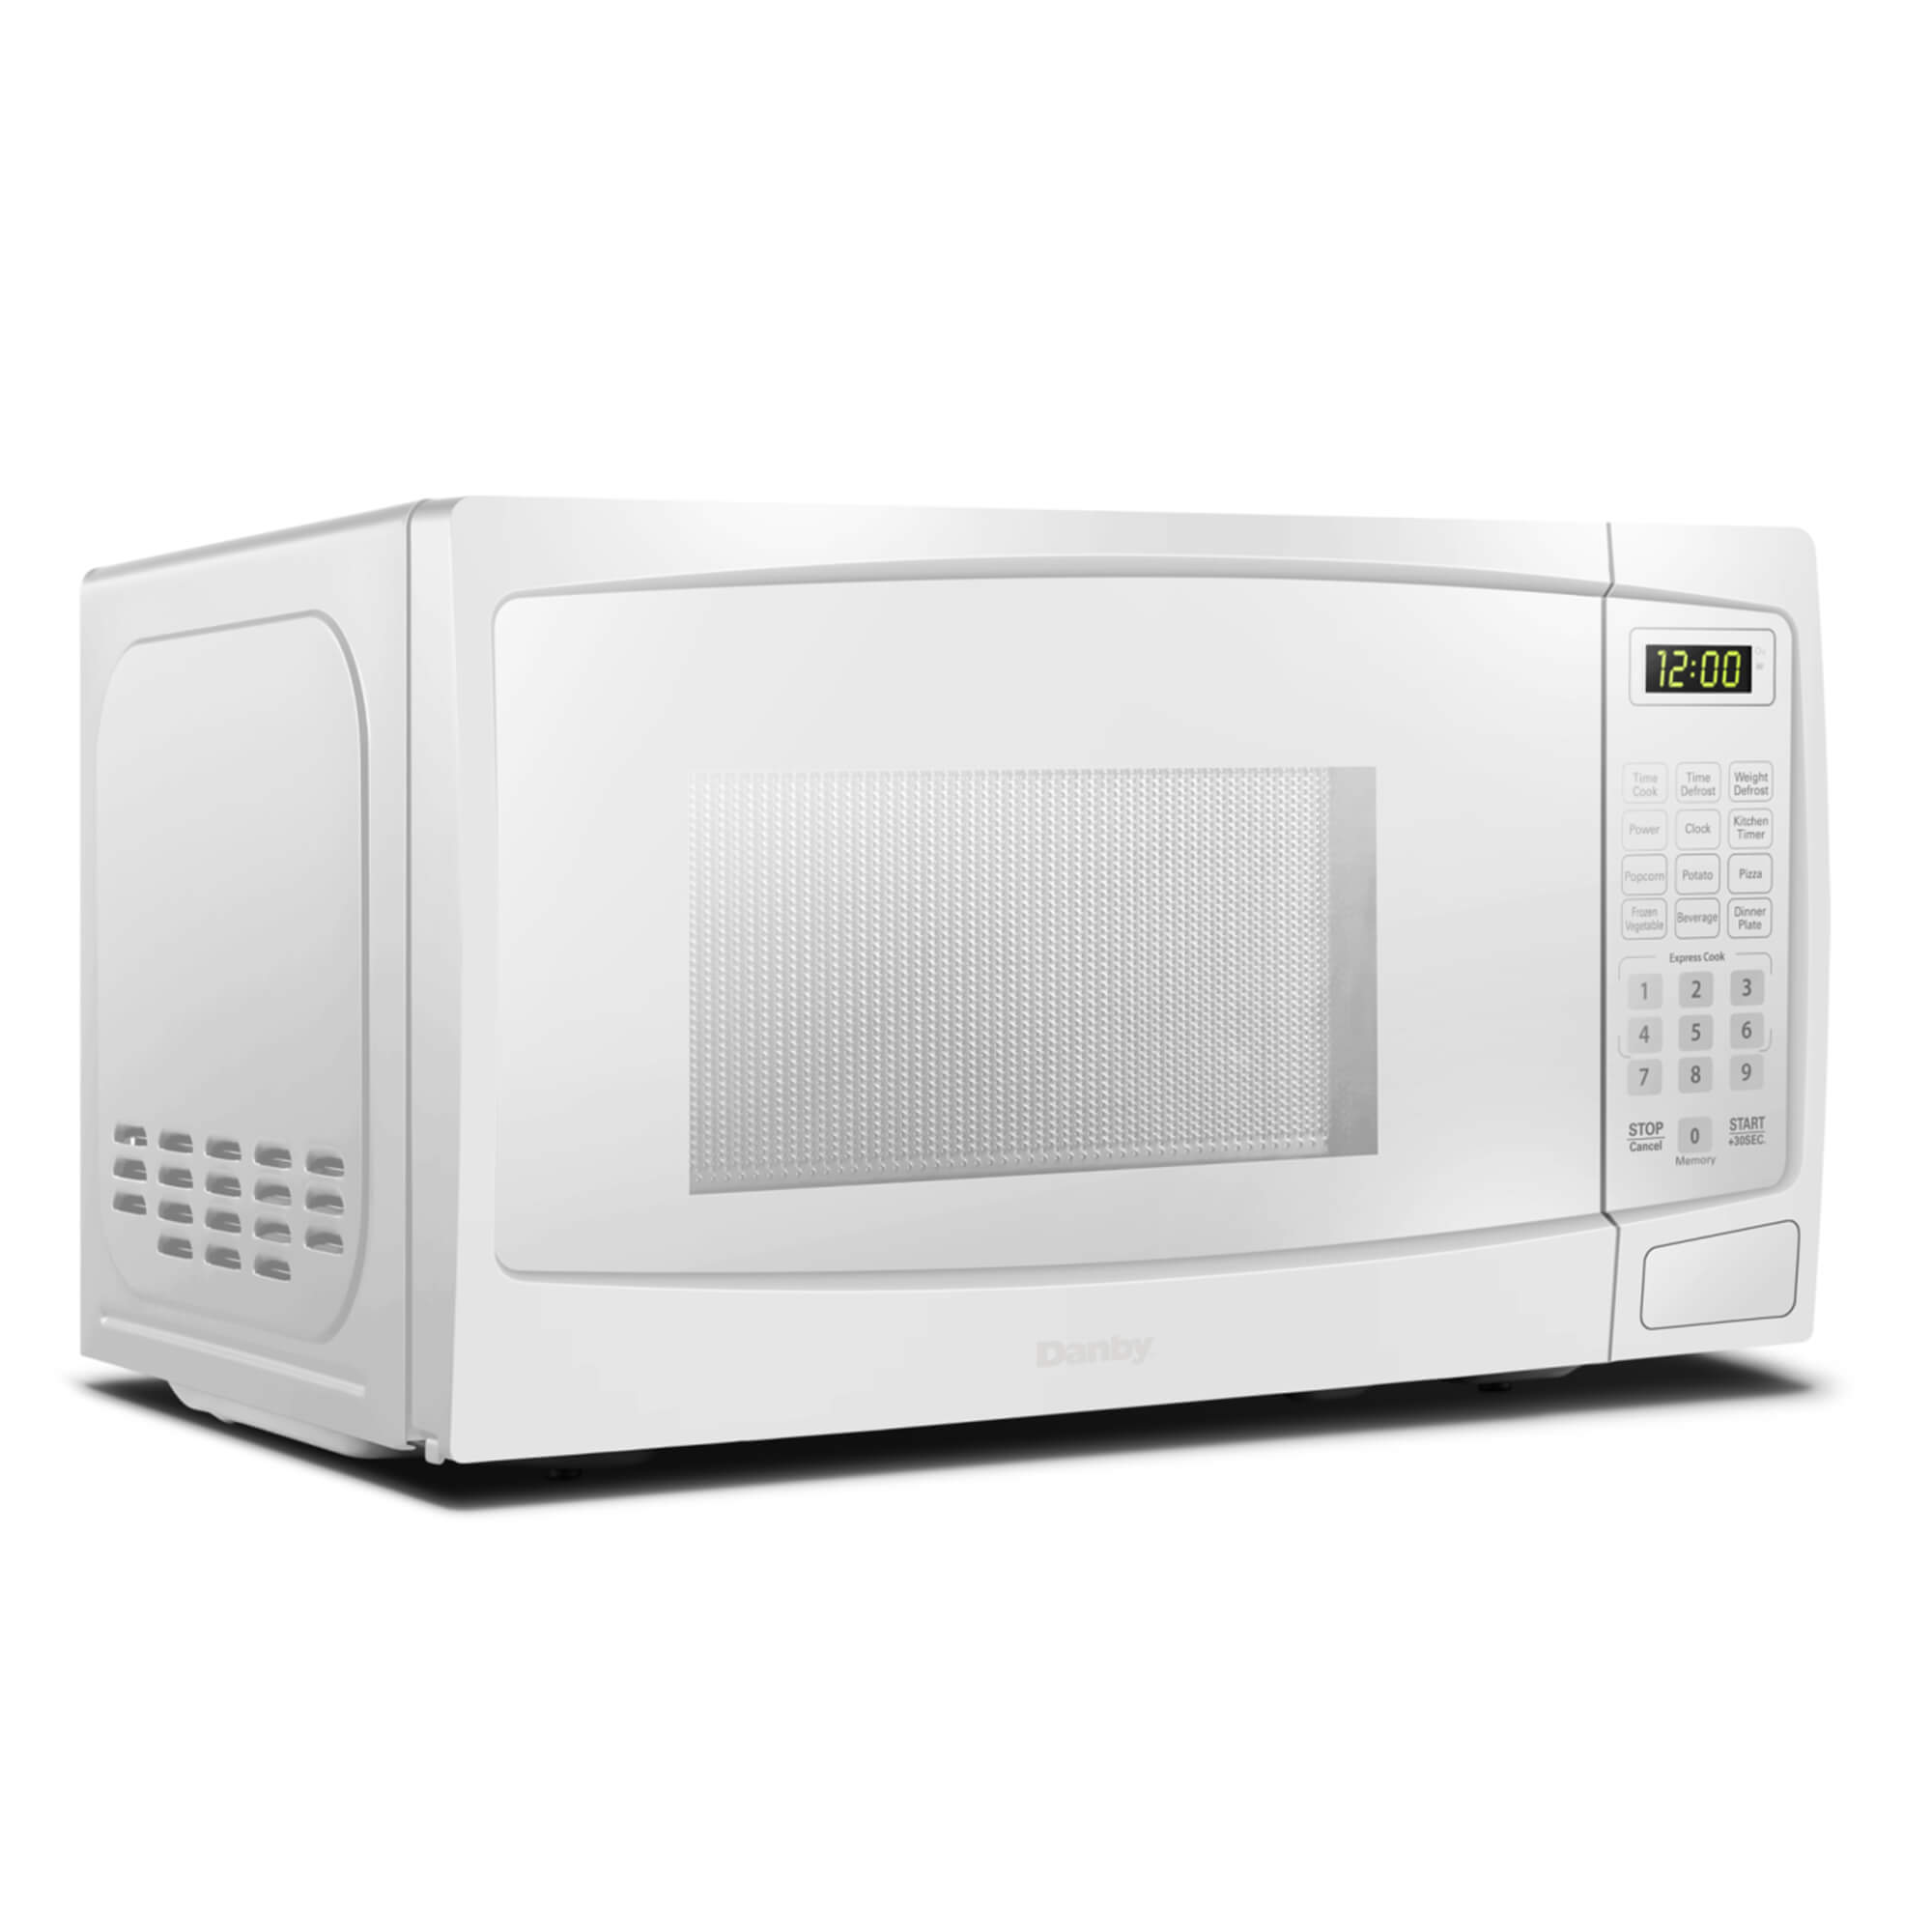 0.7 cu.ft Danby White Microwave